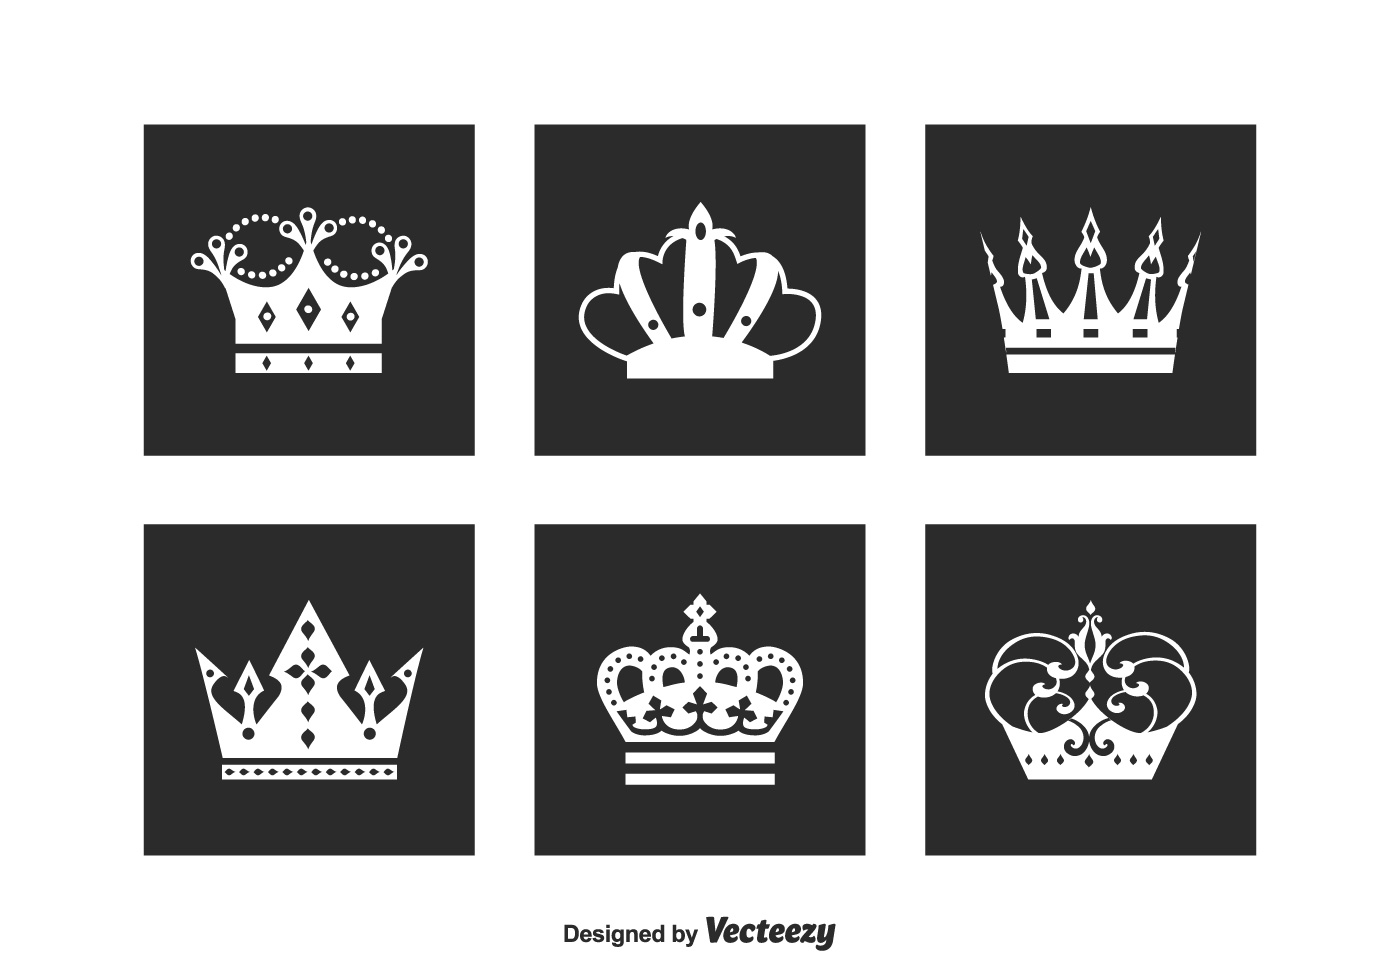 What Clothing Brand Has A Crown Logo